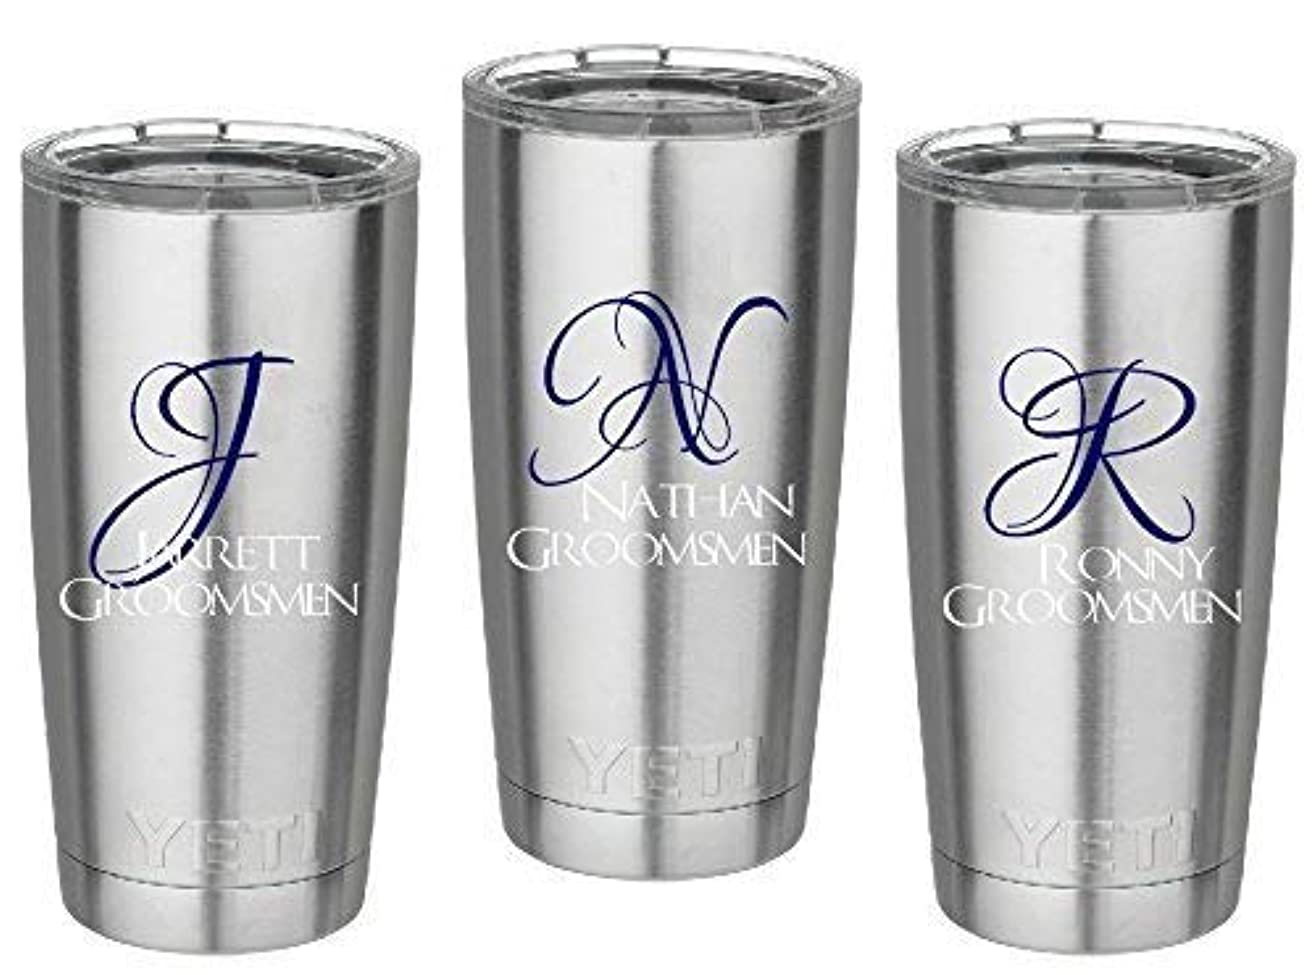 Set of 3 Groomsmen Decals. Groomsmen's name and first initial. Customize the color, name, and size. Perfect for windows, wine glasses, flasks, Yeti cups, groomsmen's gift, water bottle, etc.